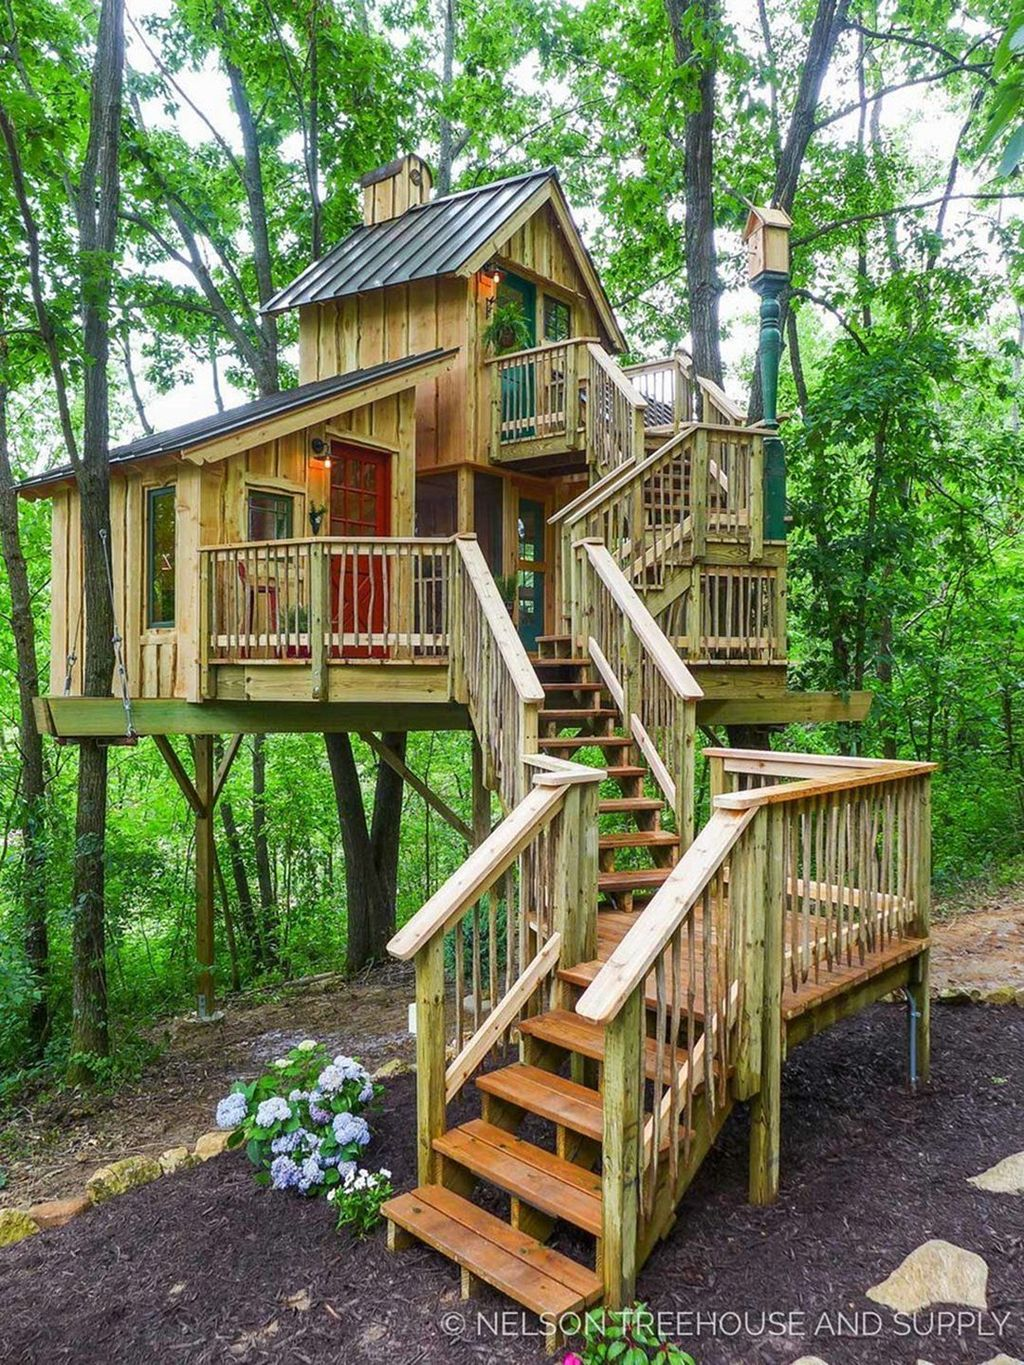 Stunning Tree House Designs You Never Seen Before 20